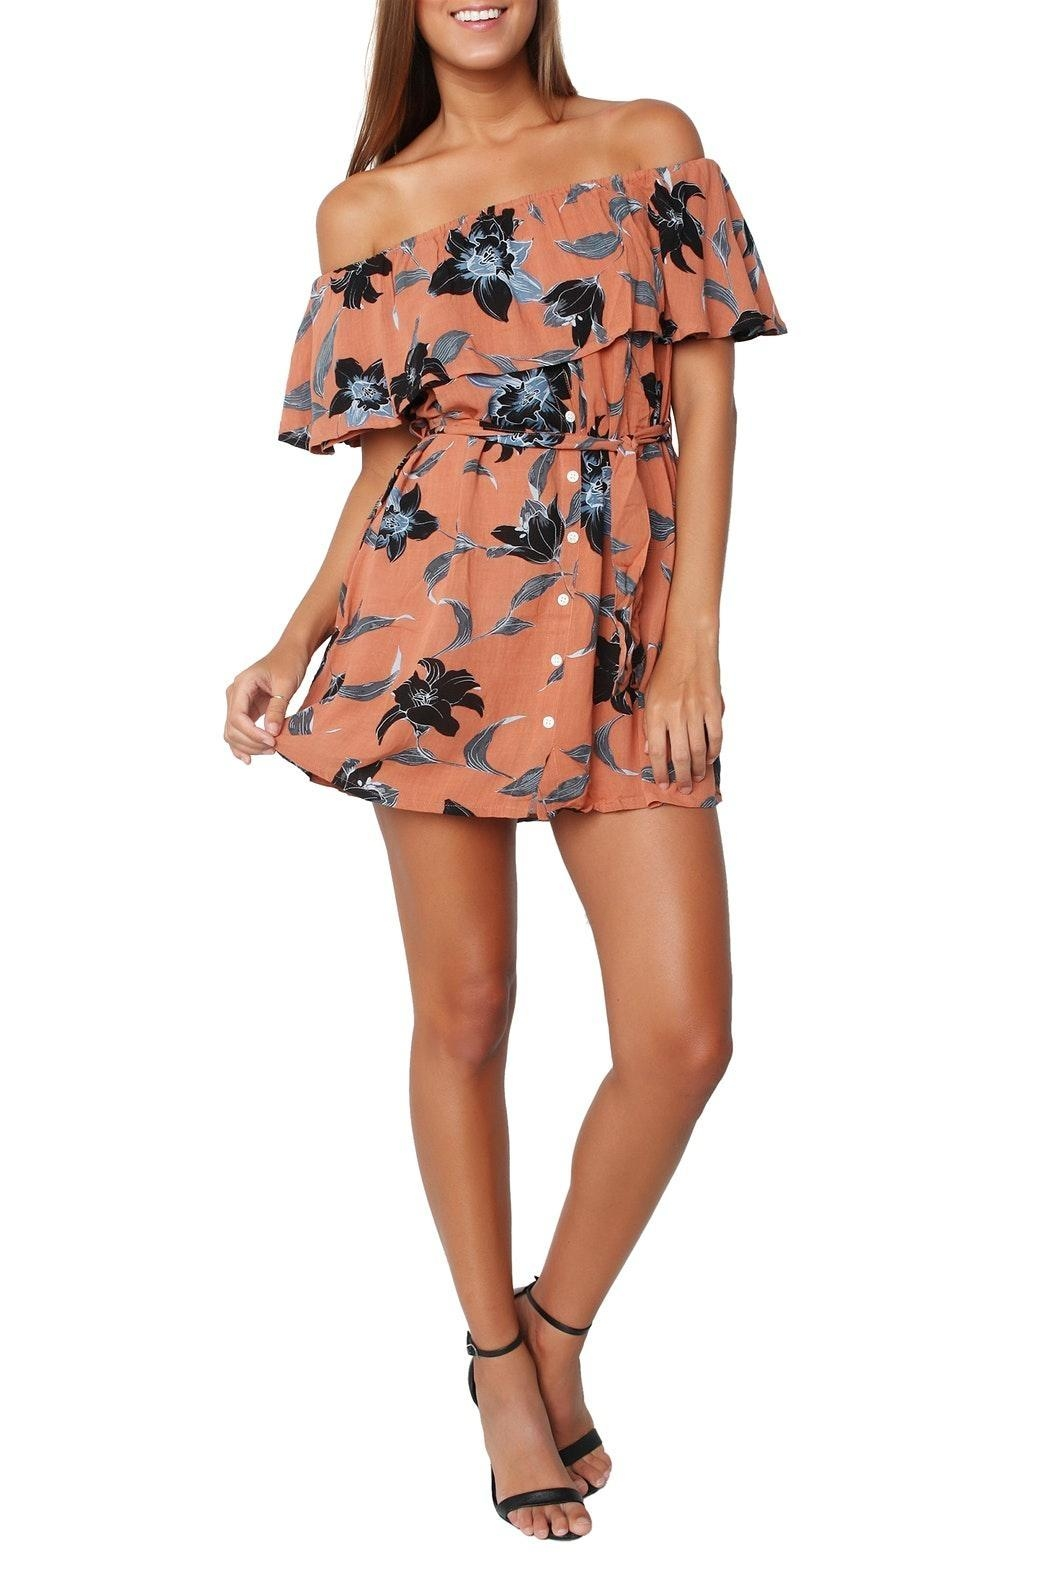 Faithfull The Brand Maldives Floral Dress - Main Image